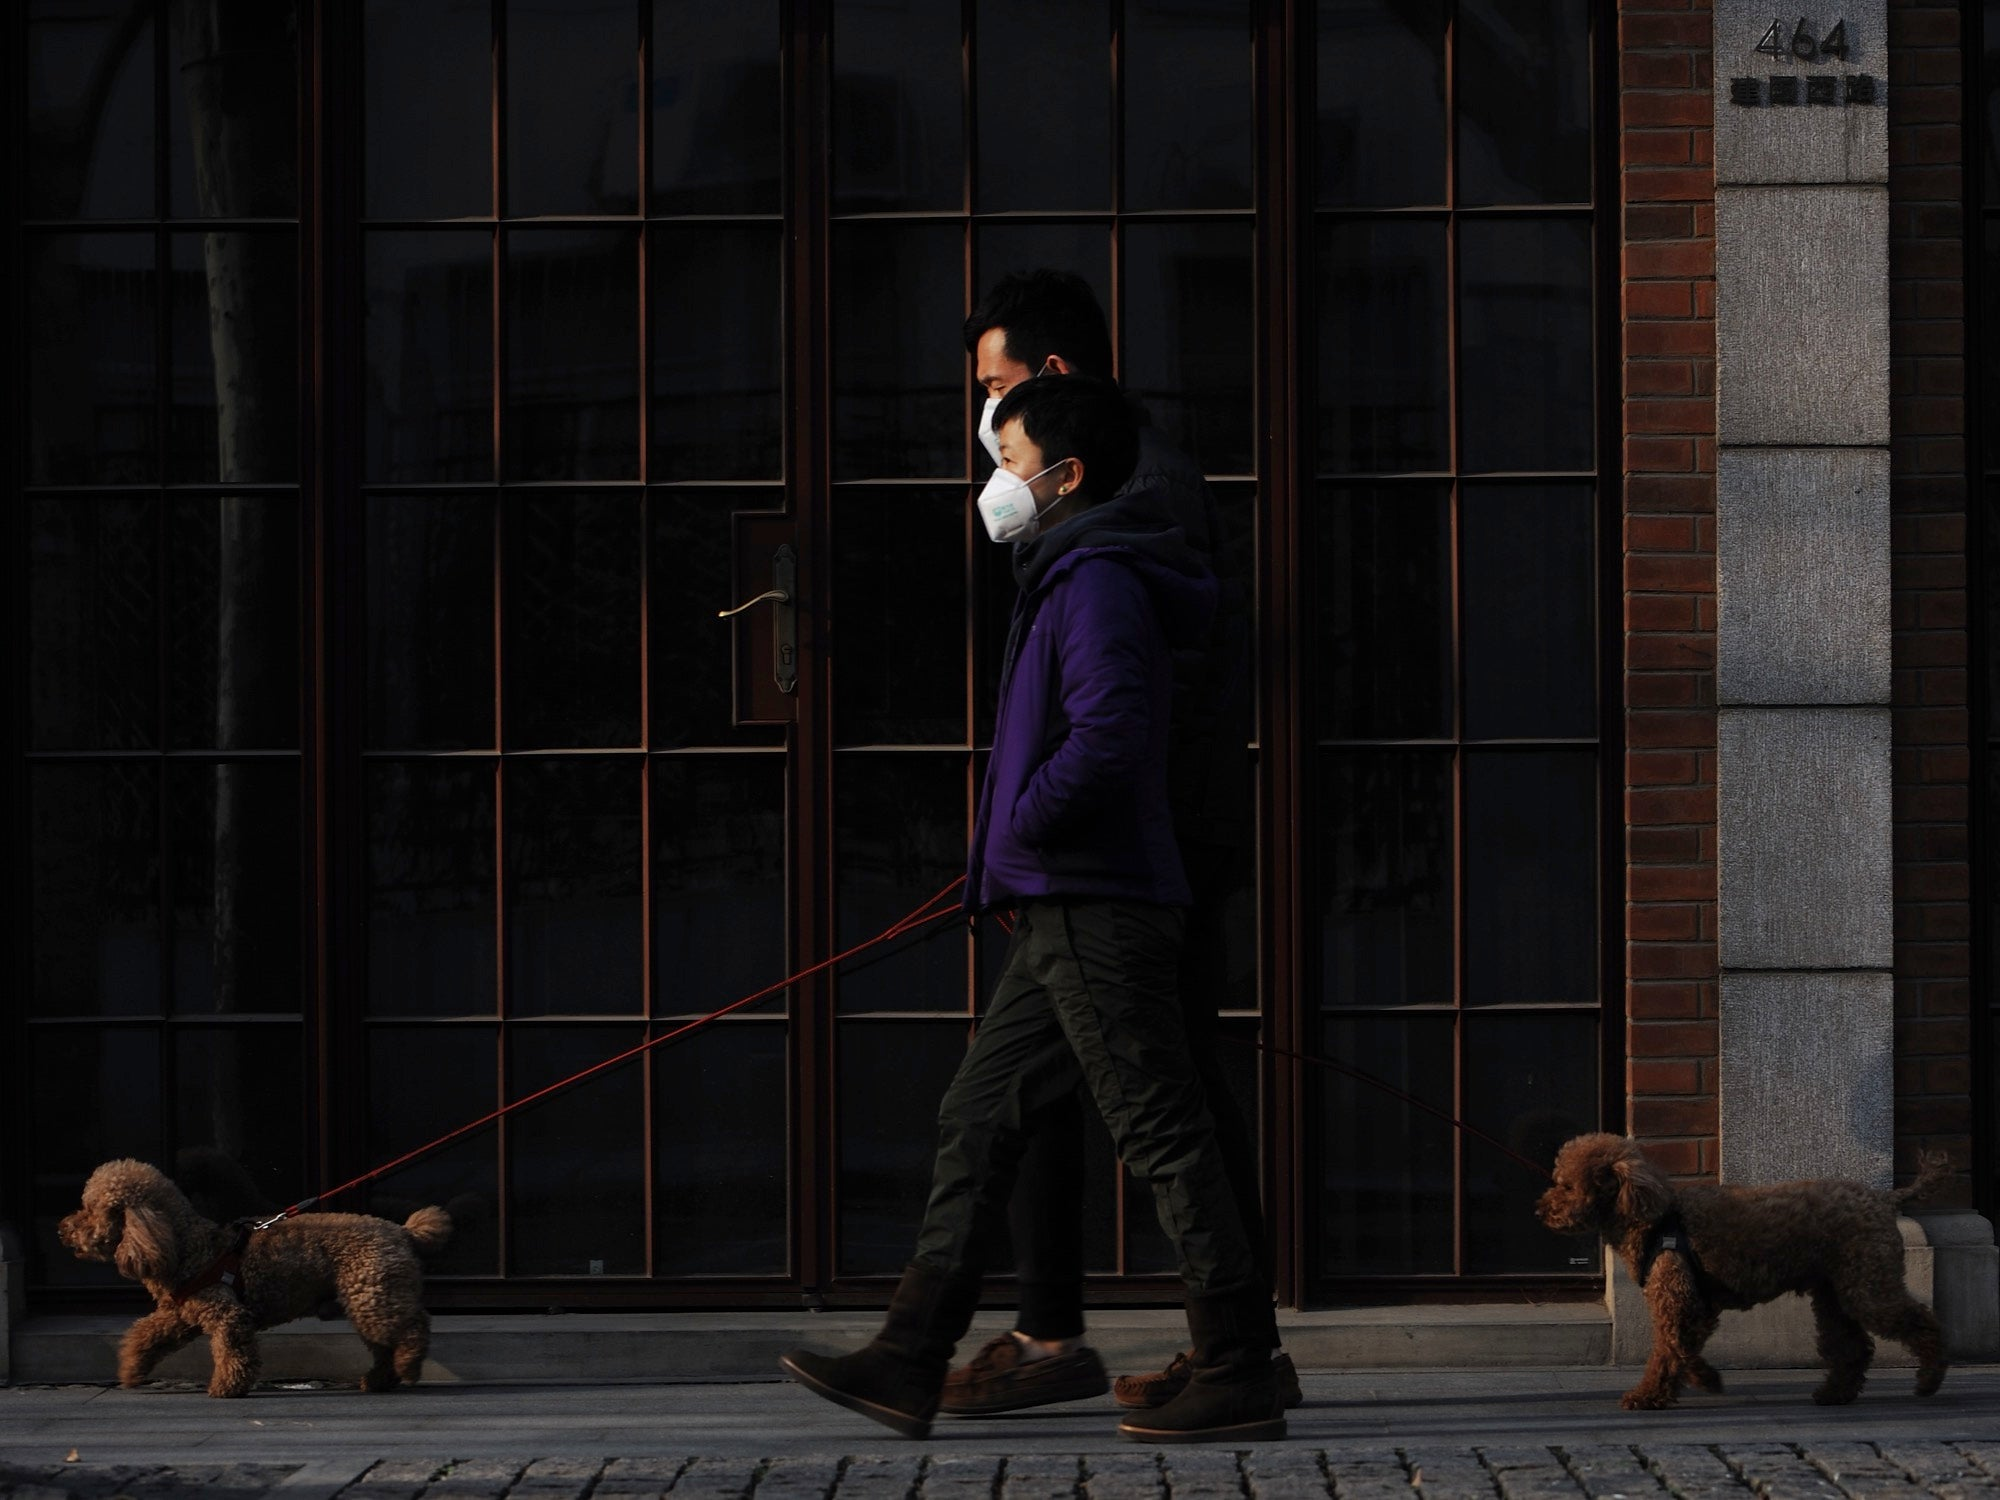 people wearing masks walking their dogs